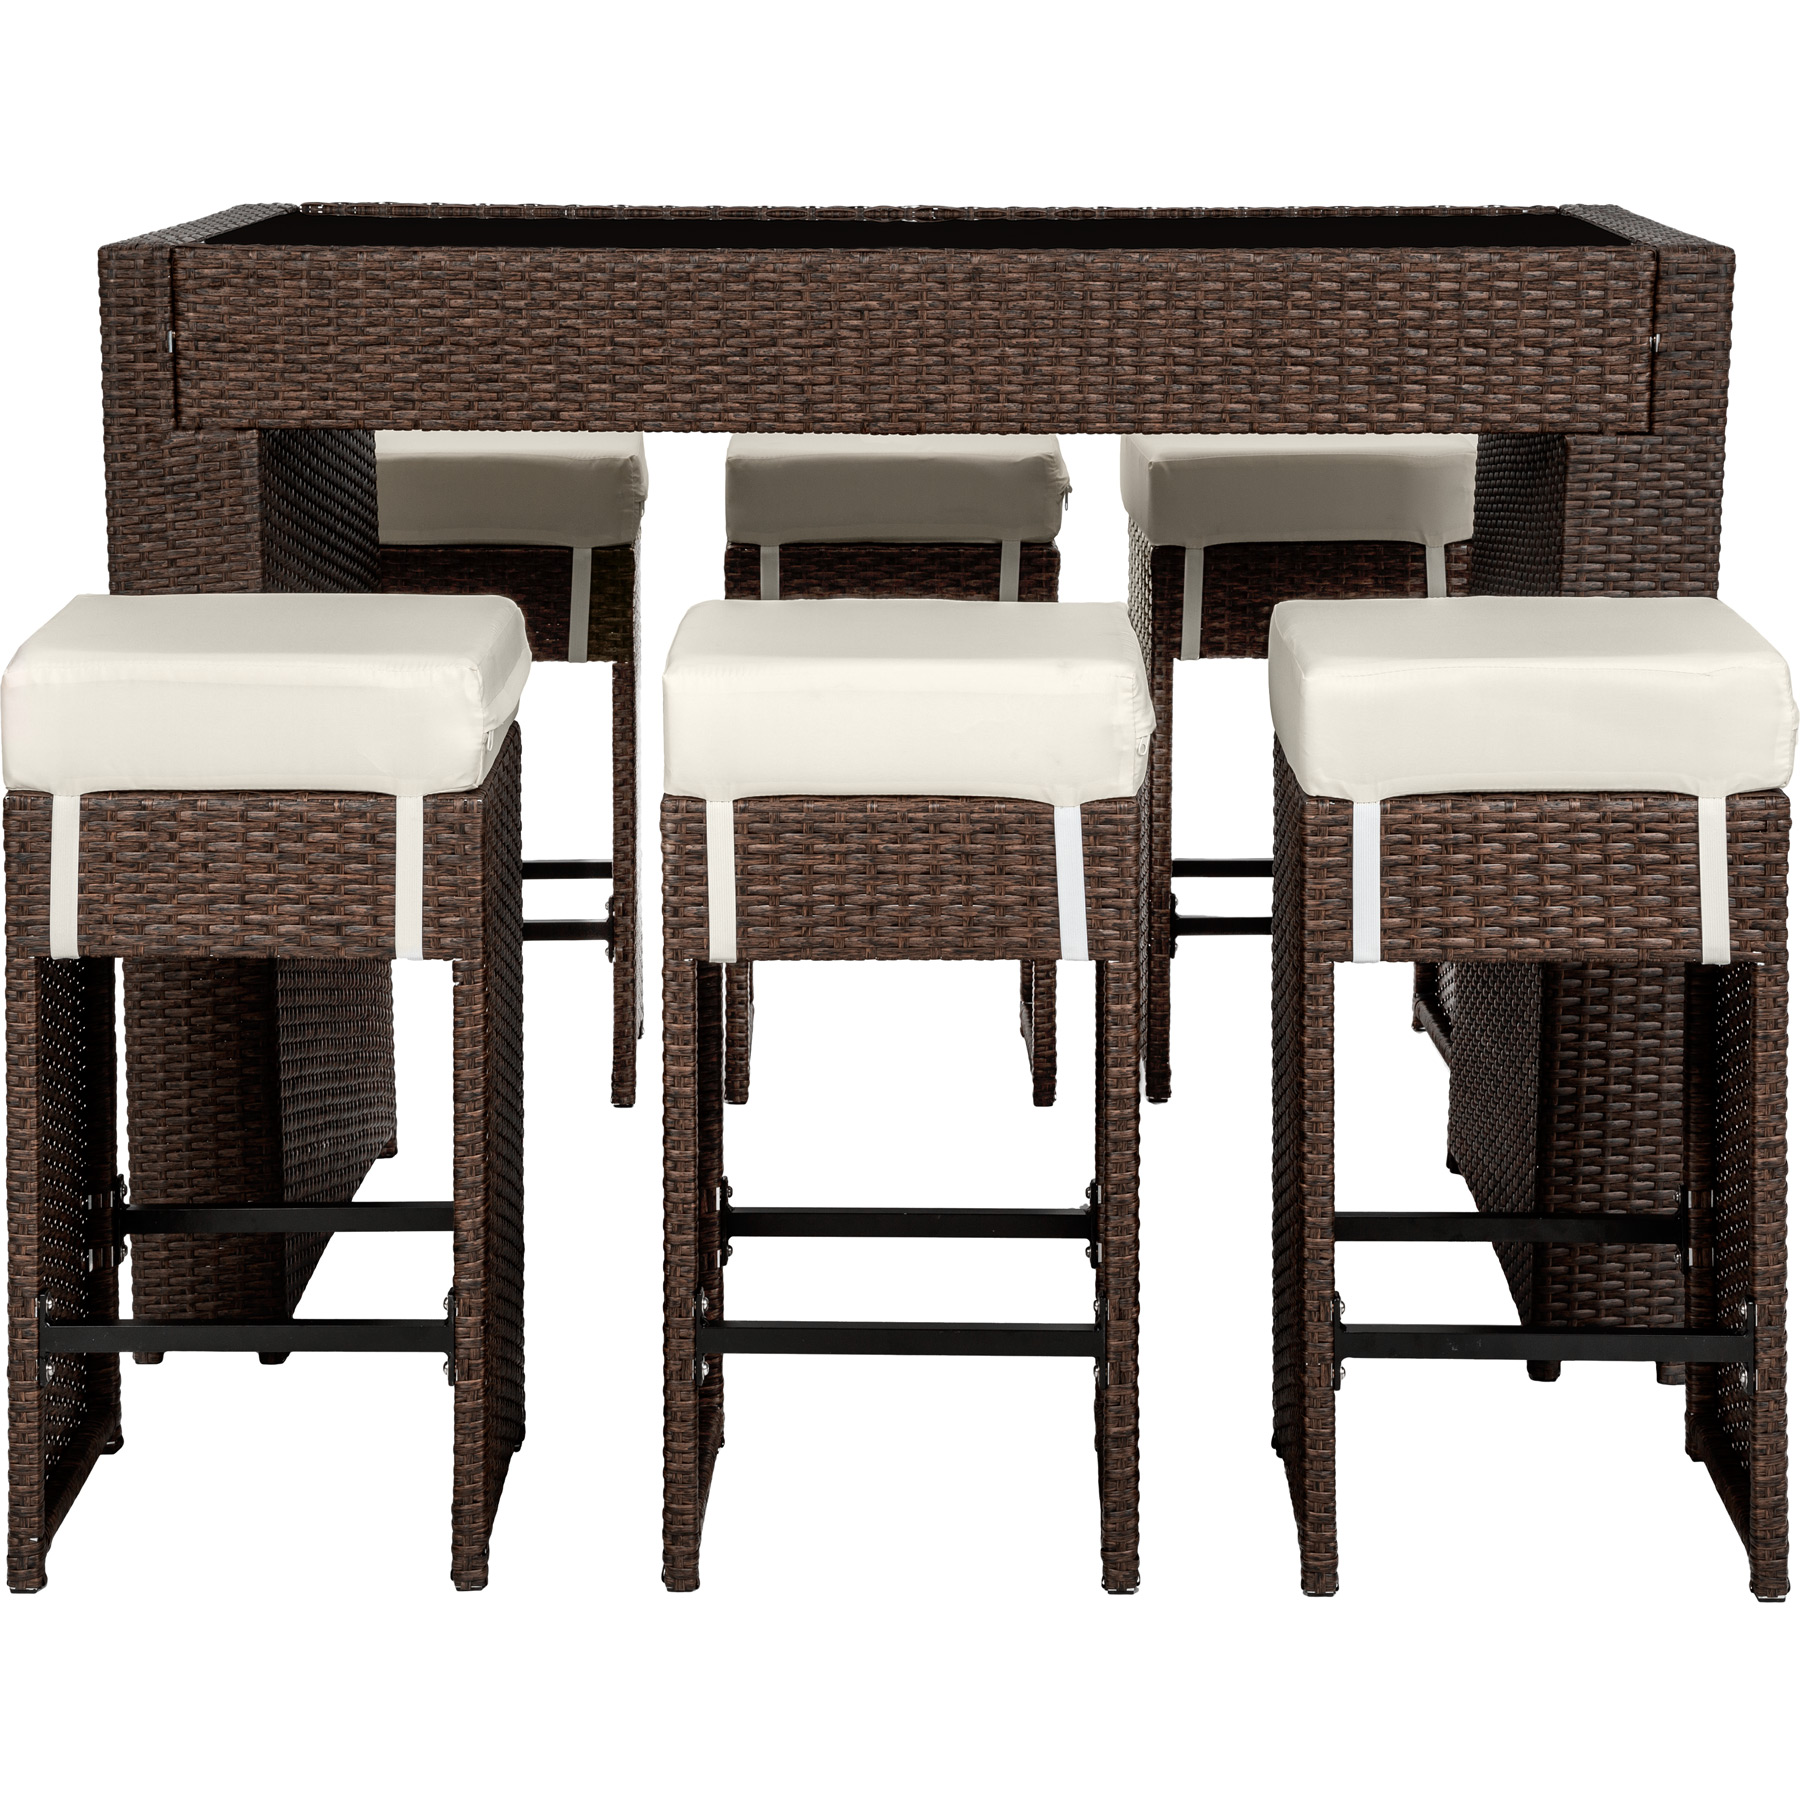 polyrattan aluminium barset tisch 6 barhocker rattan bar theke poolbar antik. Black Bedroom Furniture Sets. Home Design Ideas